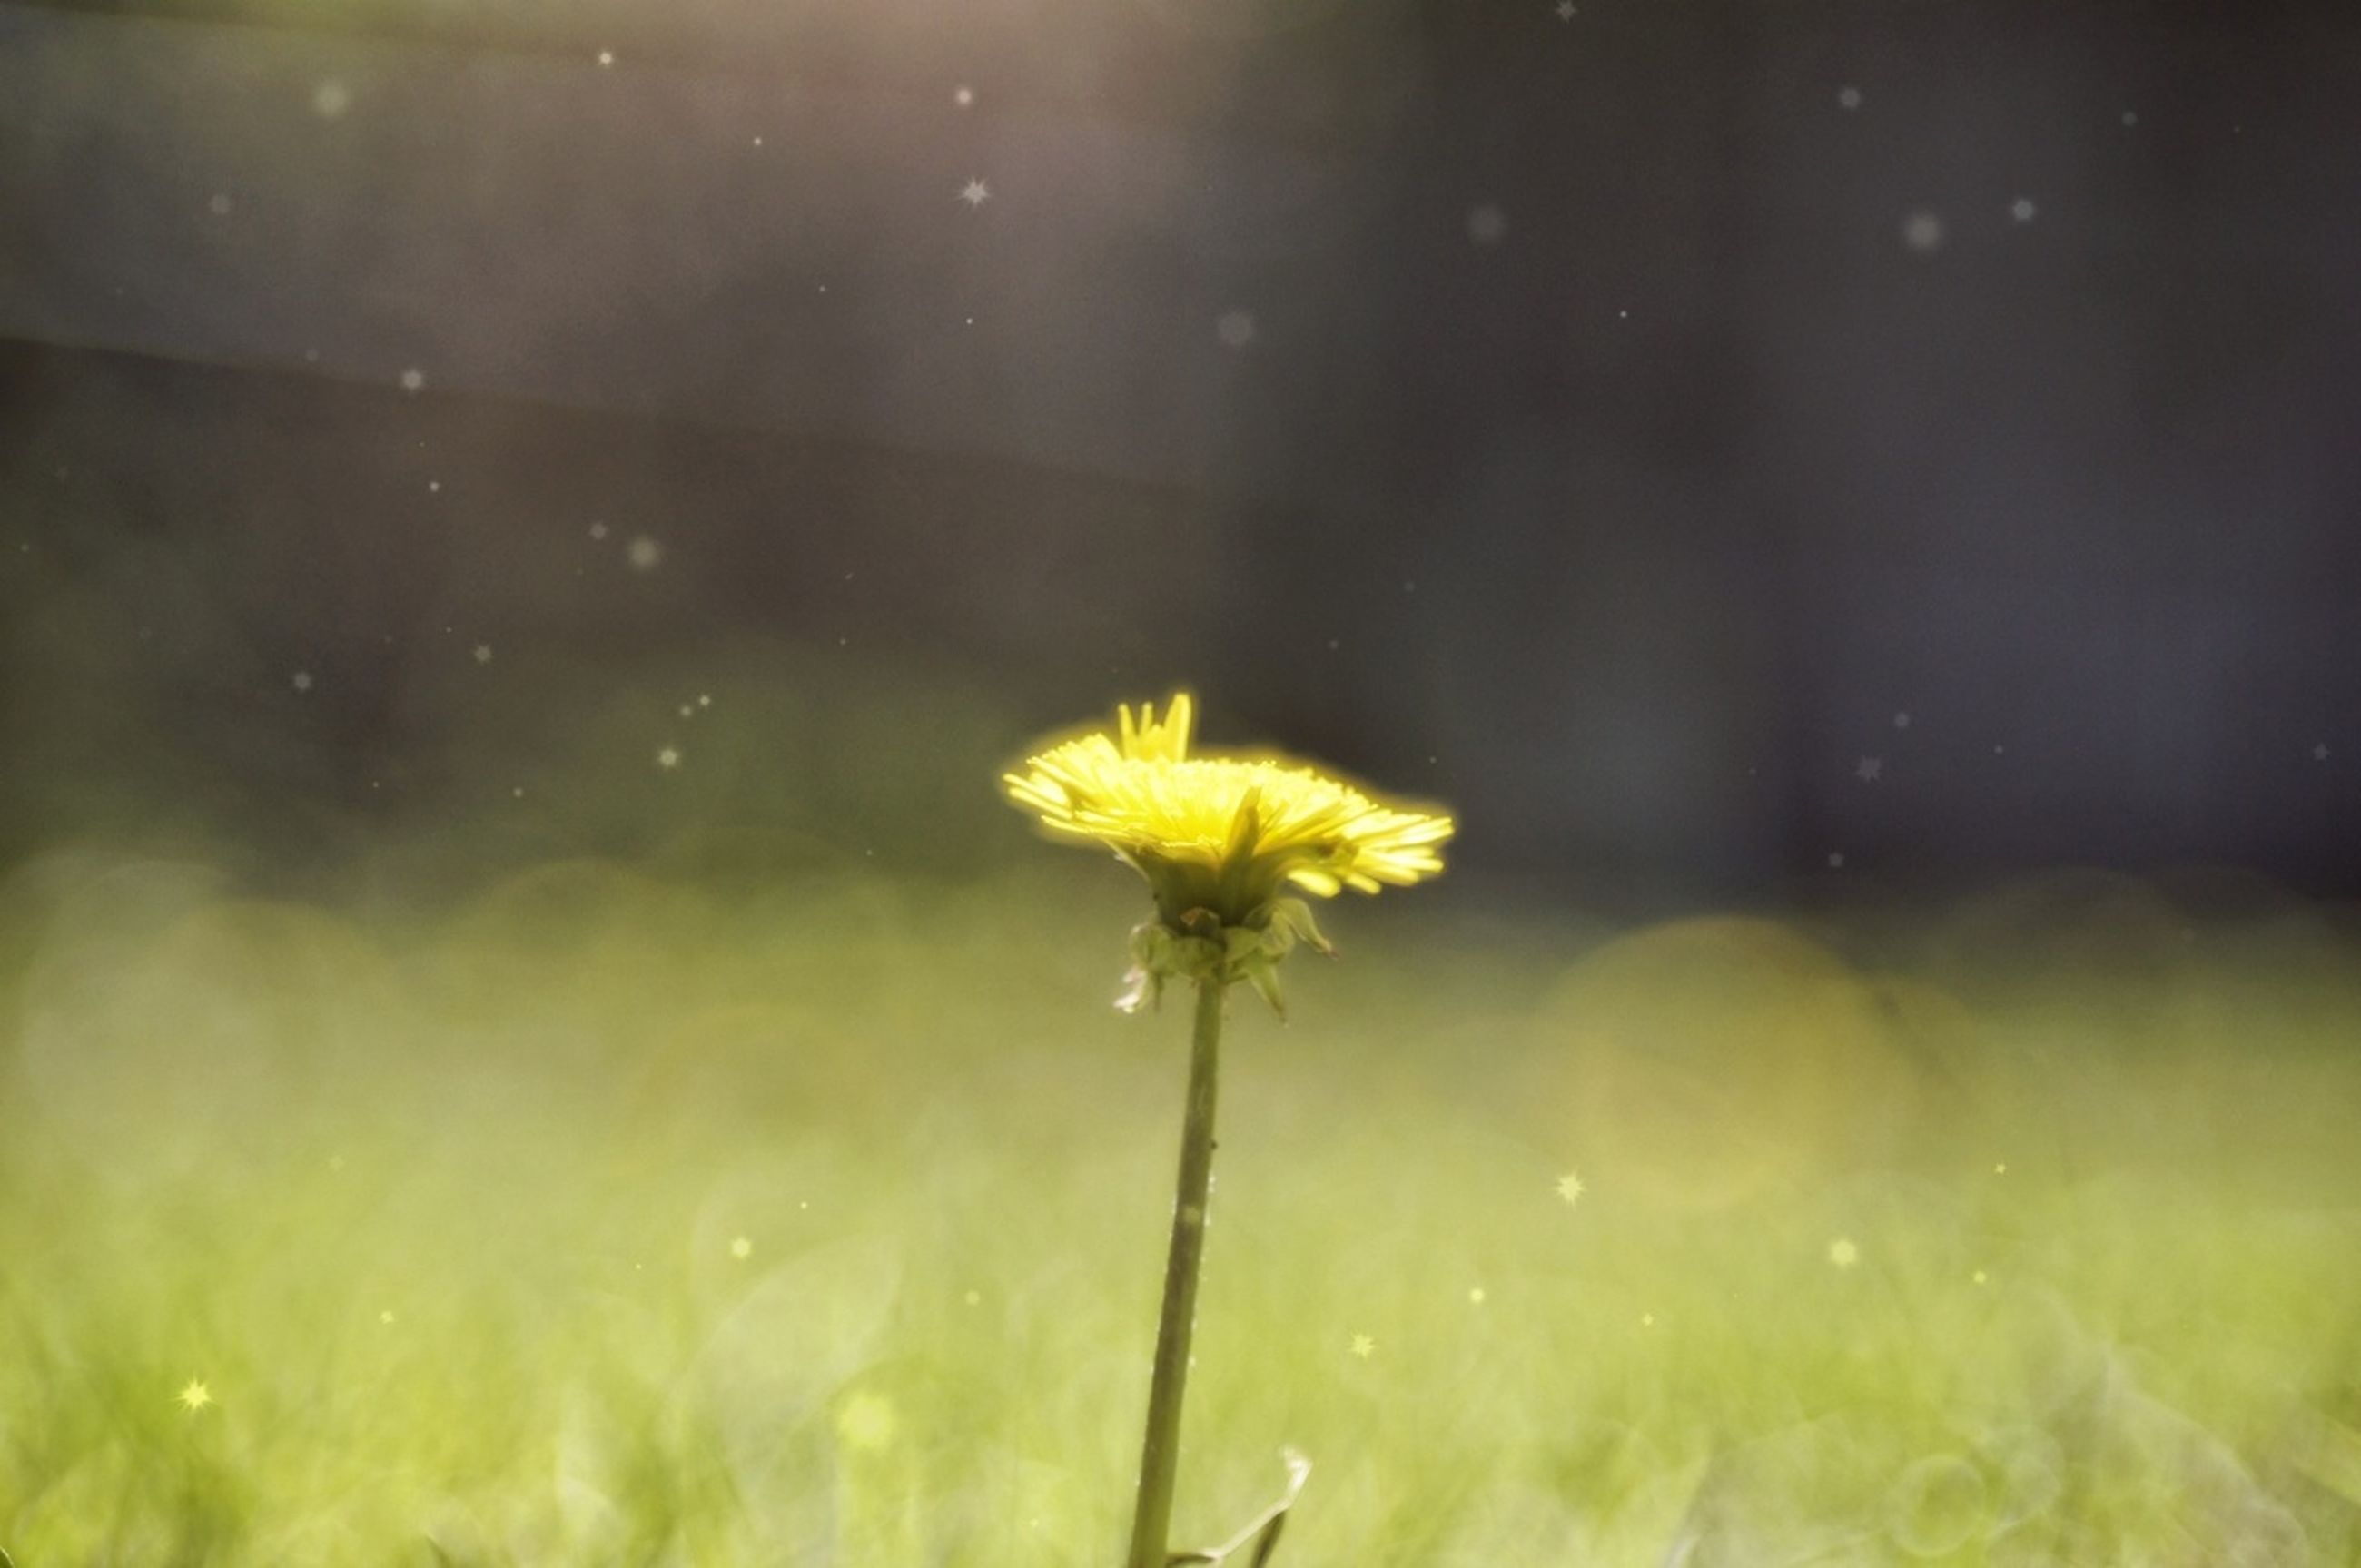 flower, fragility, freshness, flower head, petal, yellow, growth, dandelion, single flower, beauty in nature, focus on foreground, stem, nature, close-up, plant, blooming, water, selective focus, field, wildflower